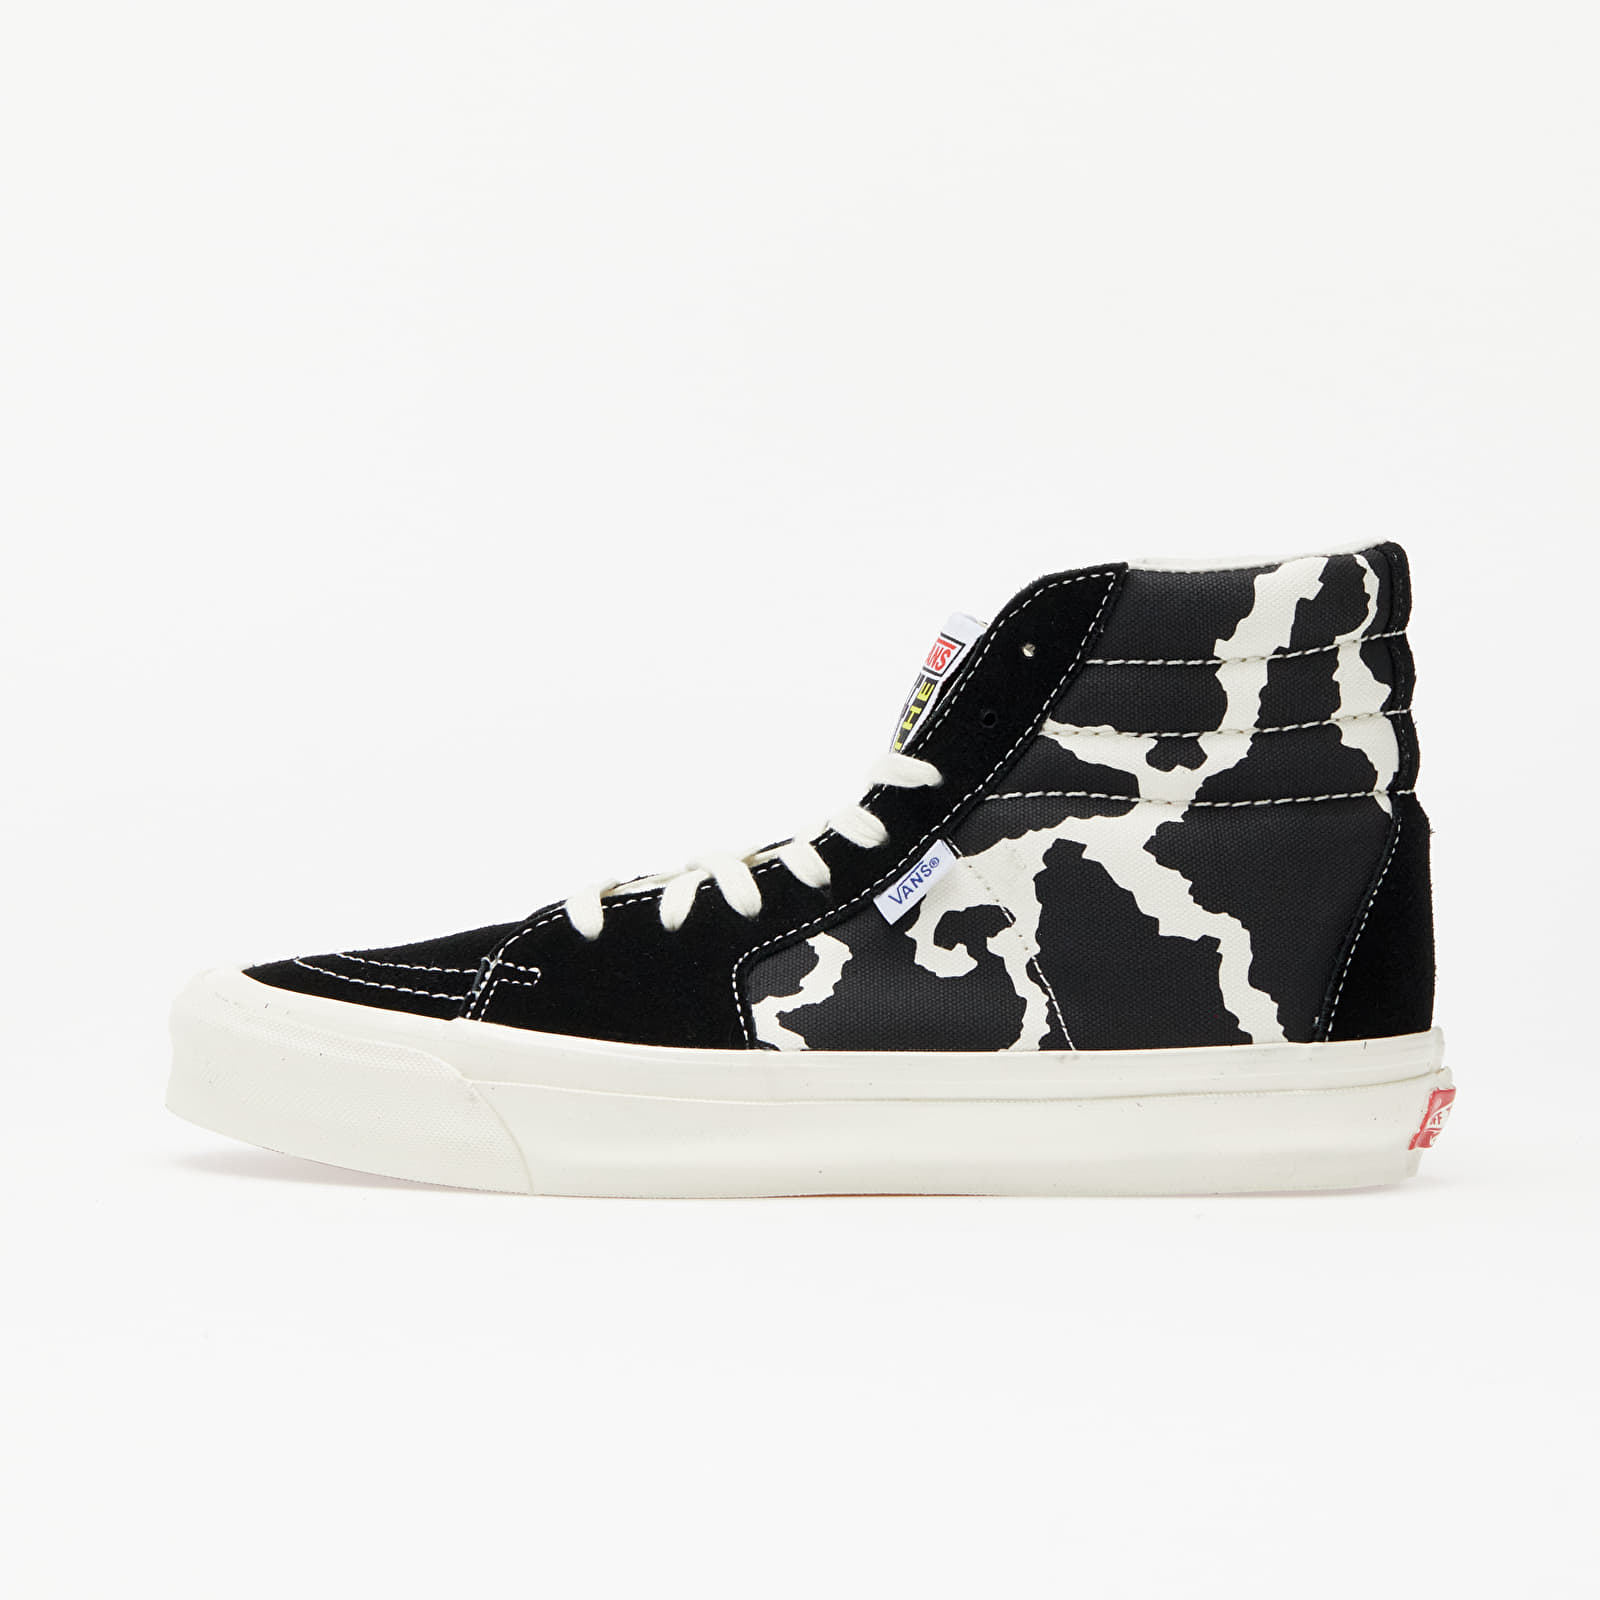 Chaussures et baskets homme Vans OG Style 38 NS LX (Suede/ Canvas) Classic White/ Black/ Marshmallow